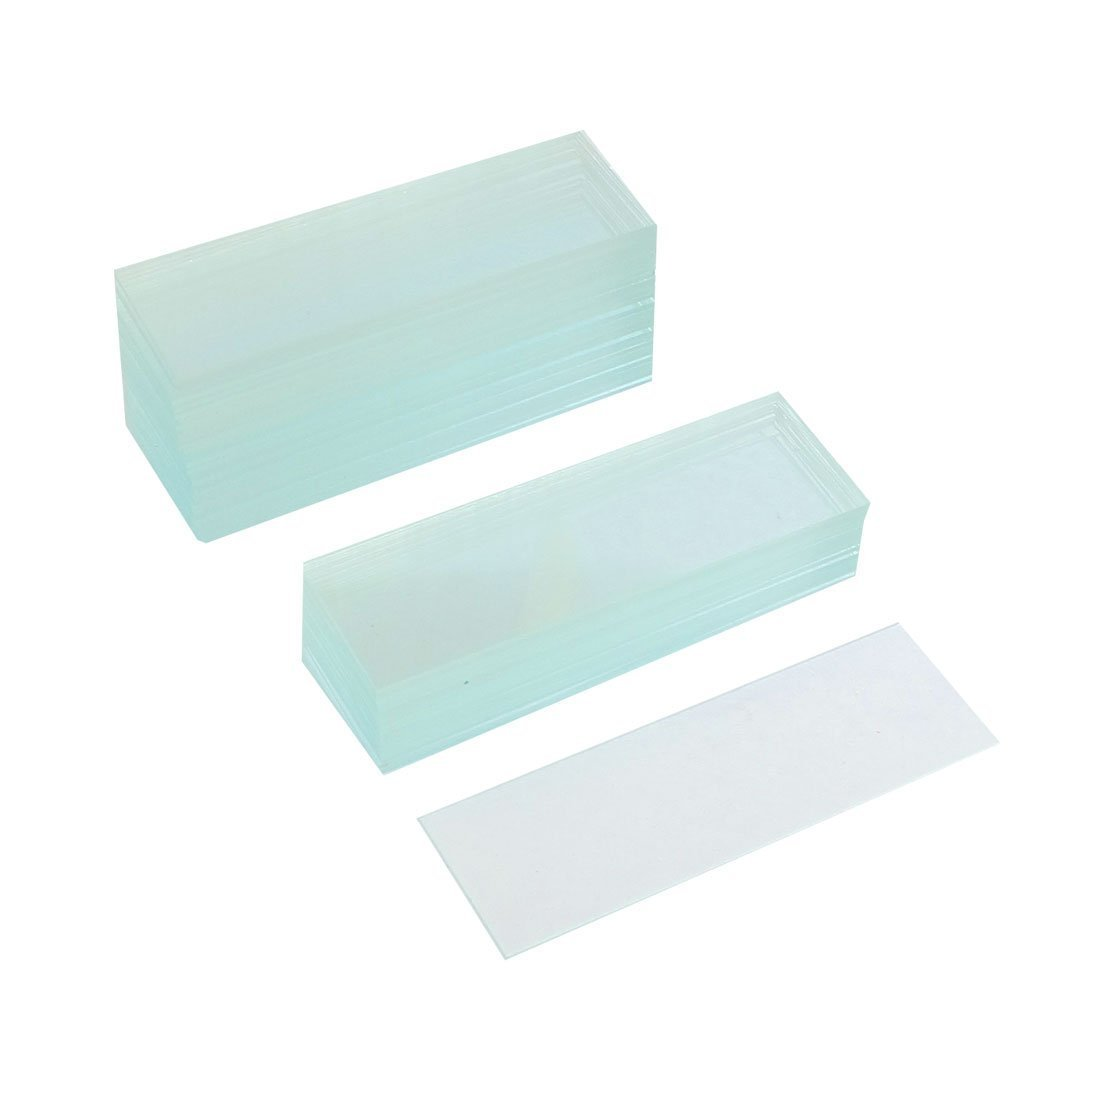 50 Pcs Pre-cleaned Microscope Blank Glass Slides 1'x3' Sourcingmap a12090600ux0828